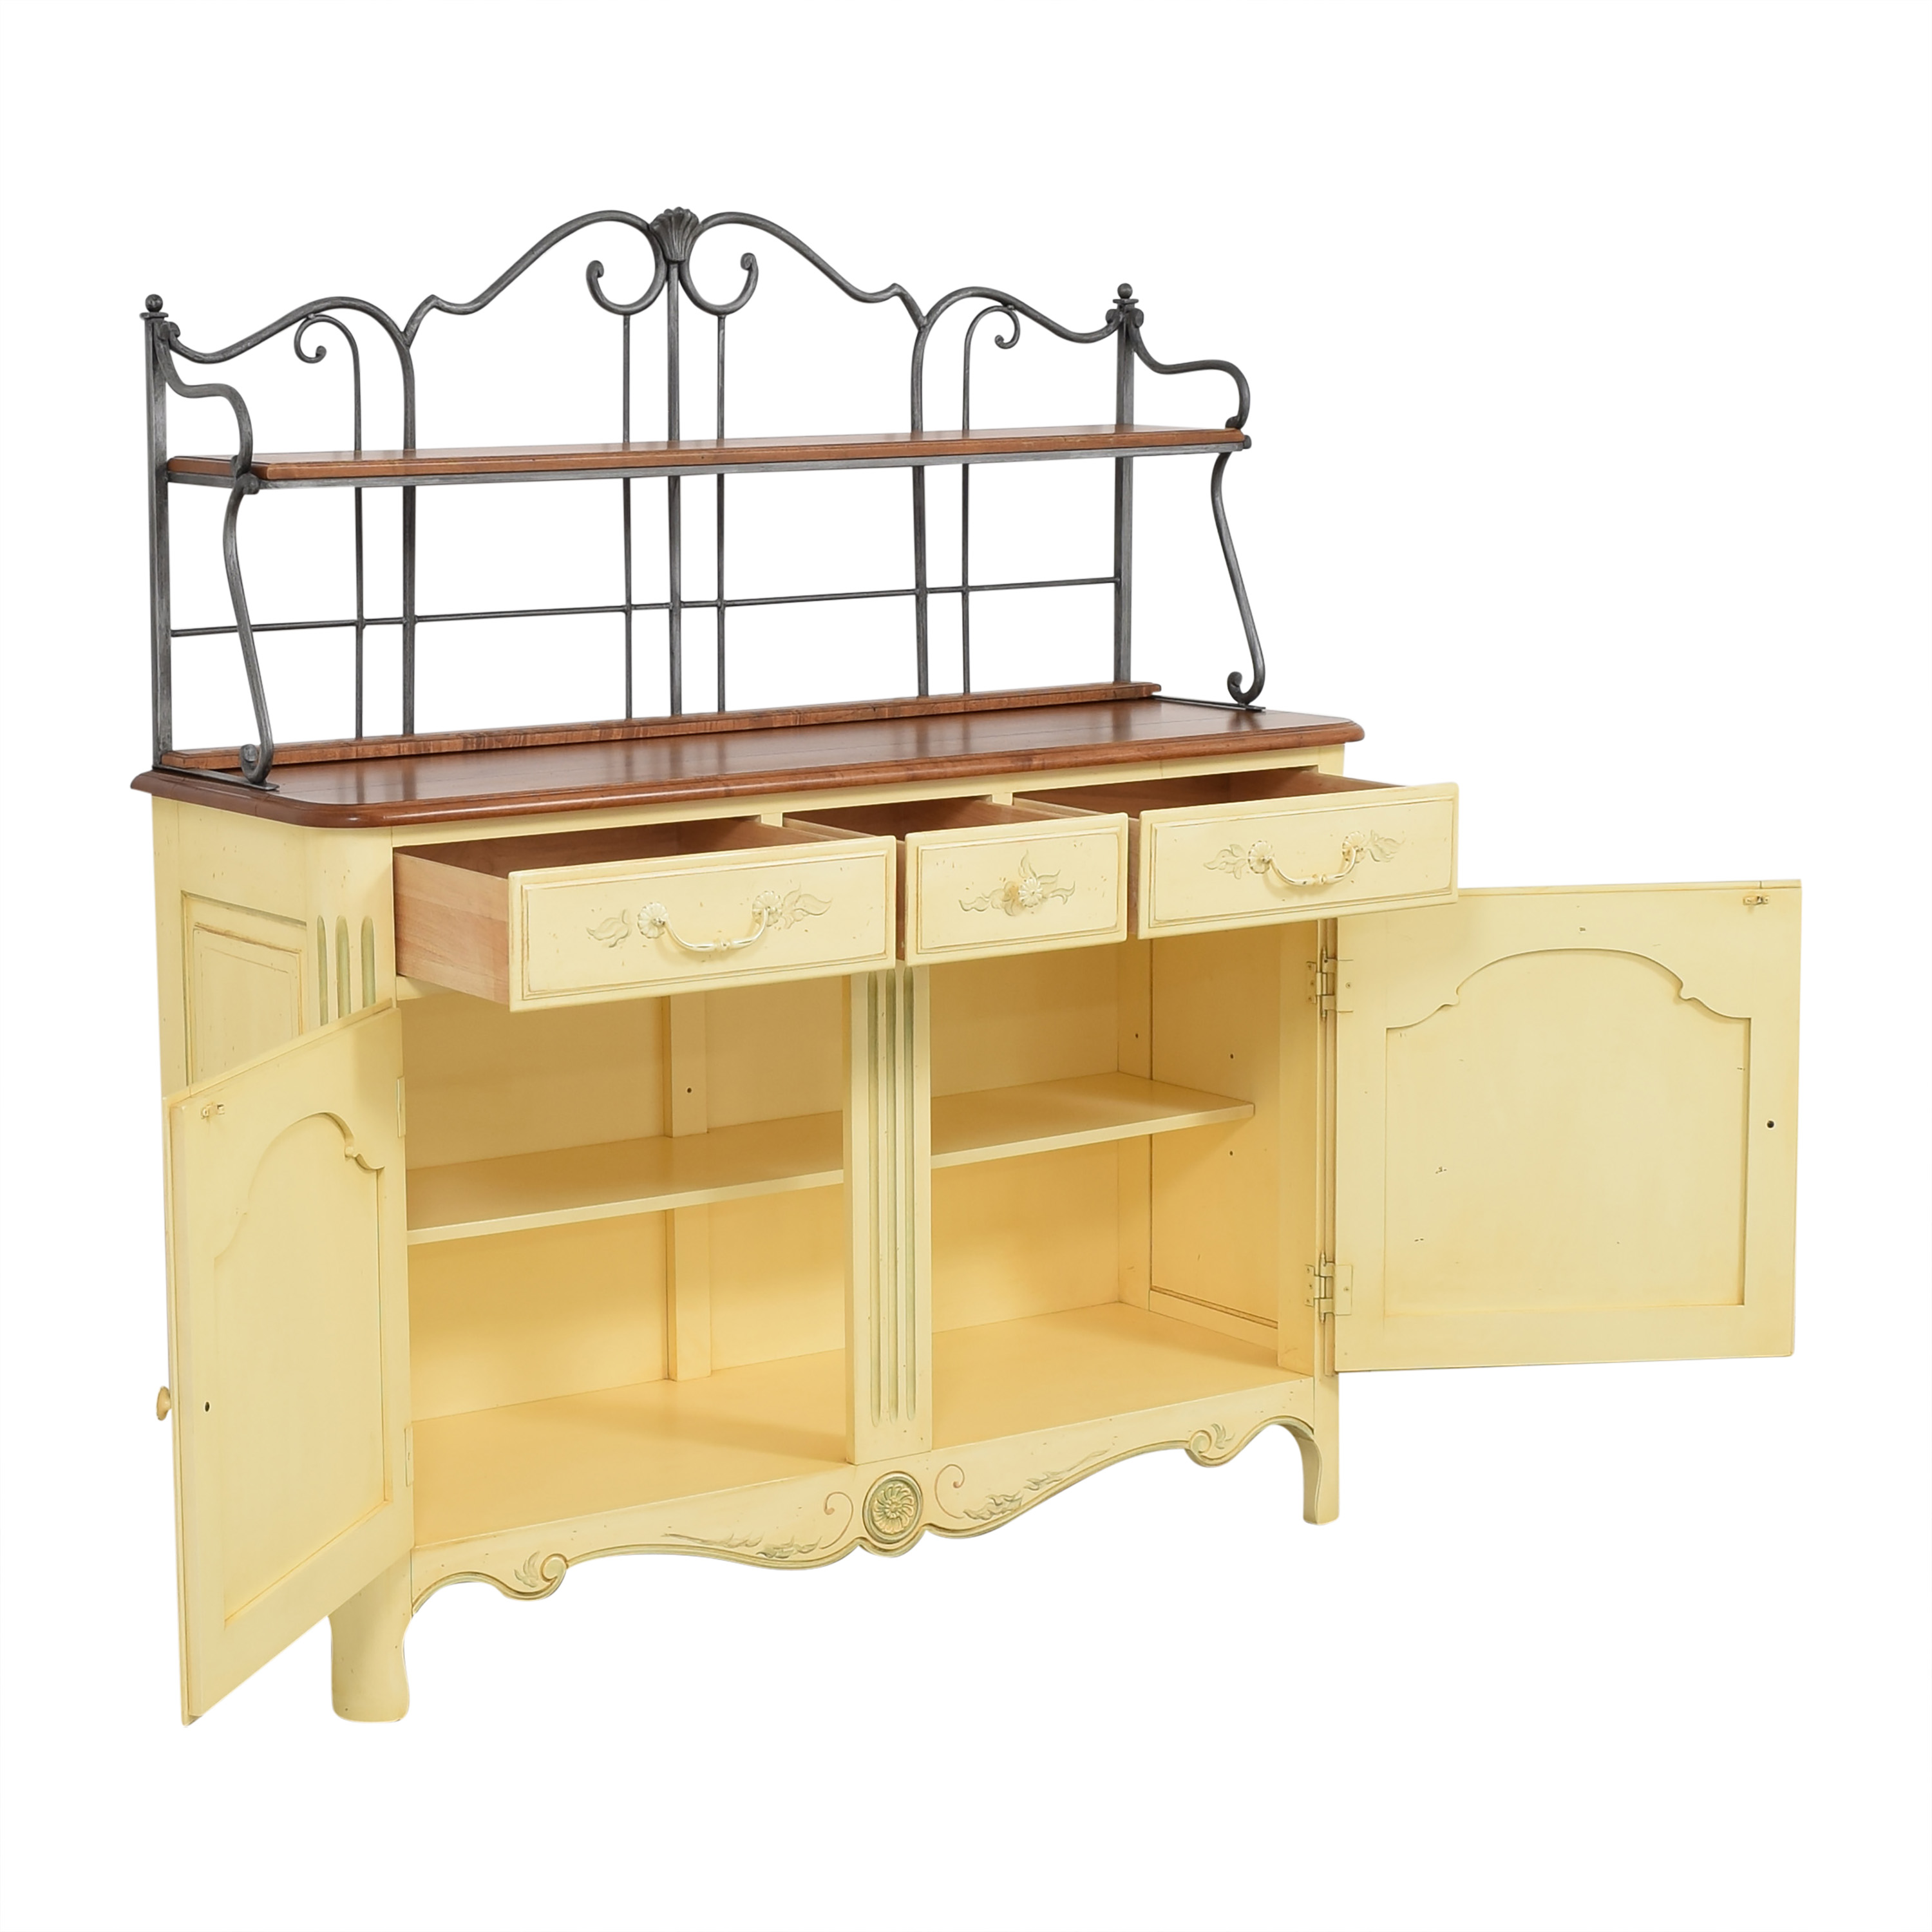 Ethan Allen Ethan Allen Legacy Country French Server Buffet ct